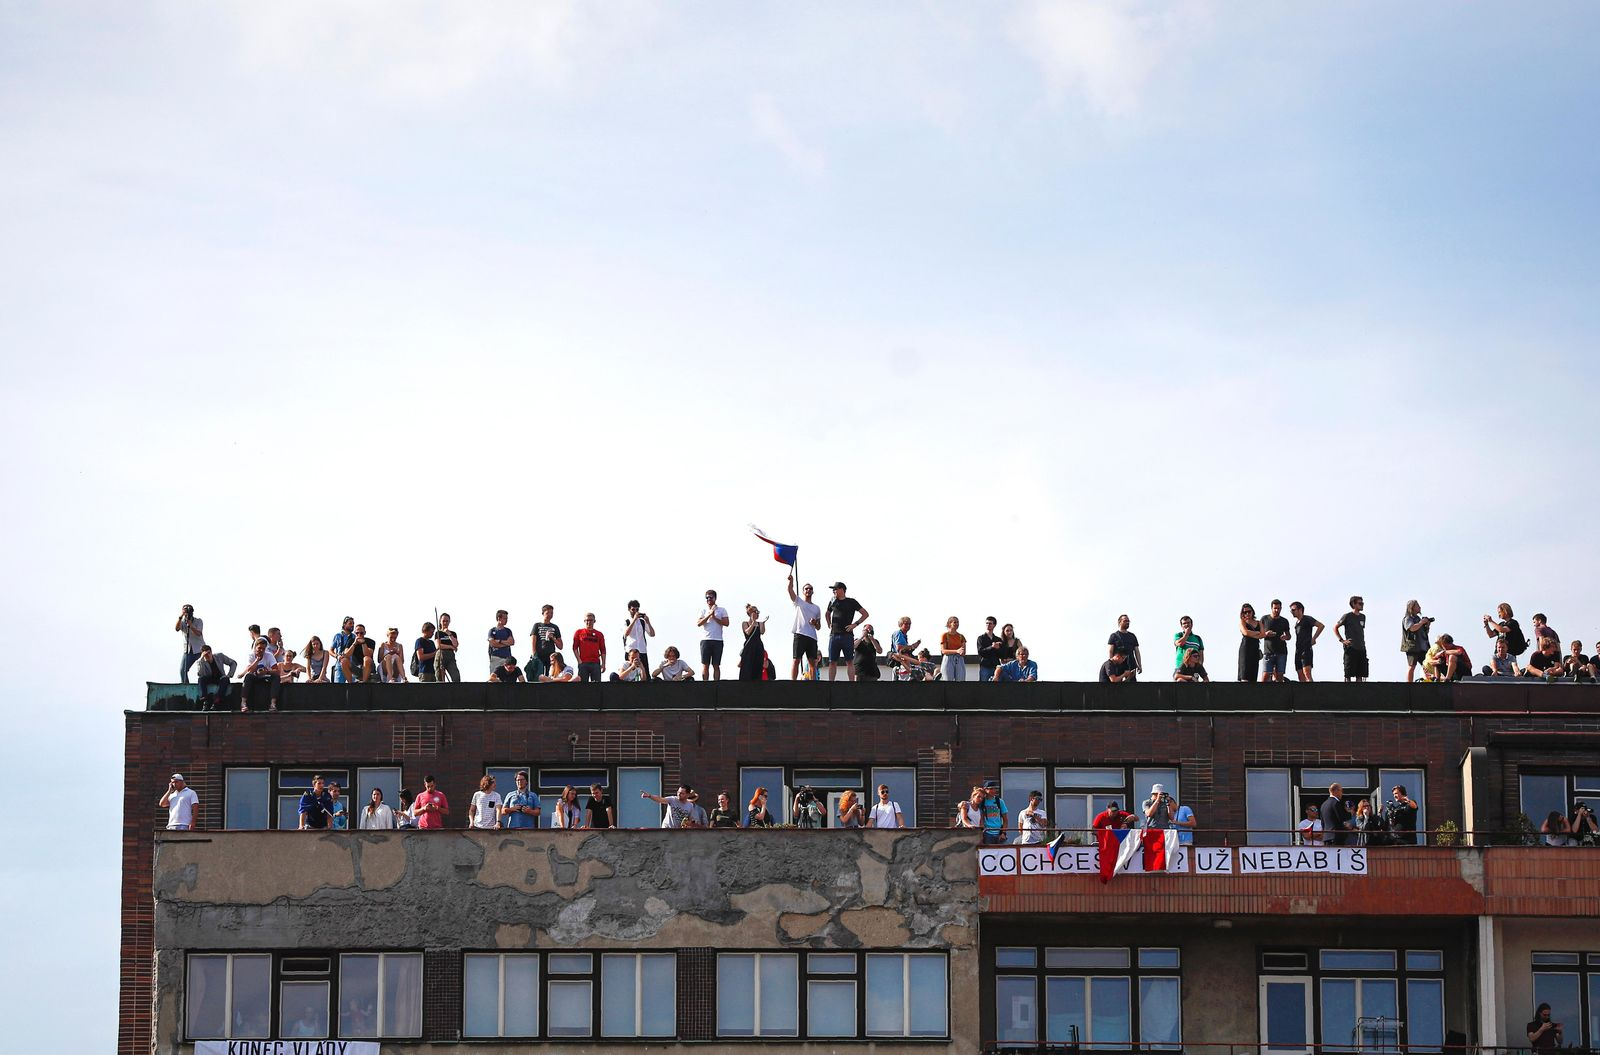 People watch from a nearby building as protesters demand the resignation of Czech Prime Minister Andrej Babis in Prague, Czech Republic, Sunday, June 23, 2019. Protesters are on calling on Czech Prime Minister Andrej Babis to step down over fraud allegations and subsidies paid to his former companies. (AP Photo/Petr David Josek)